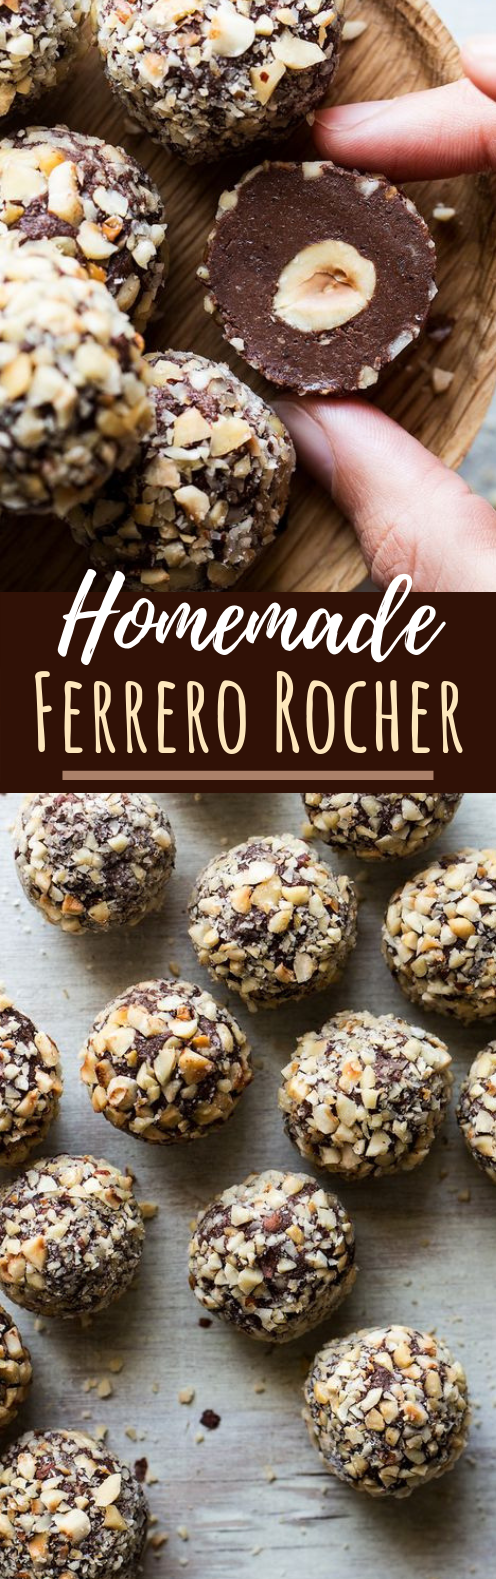 Homemade Ferrero Rocher #chocolate #desserts